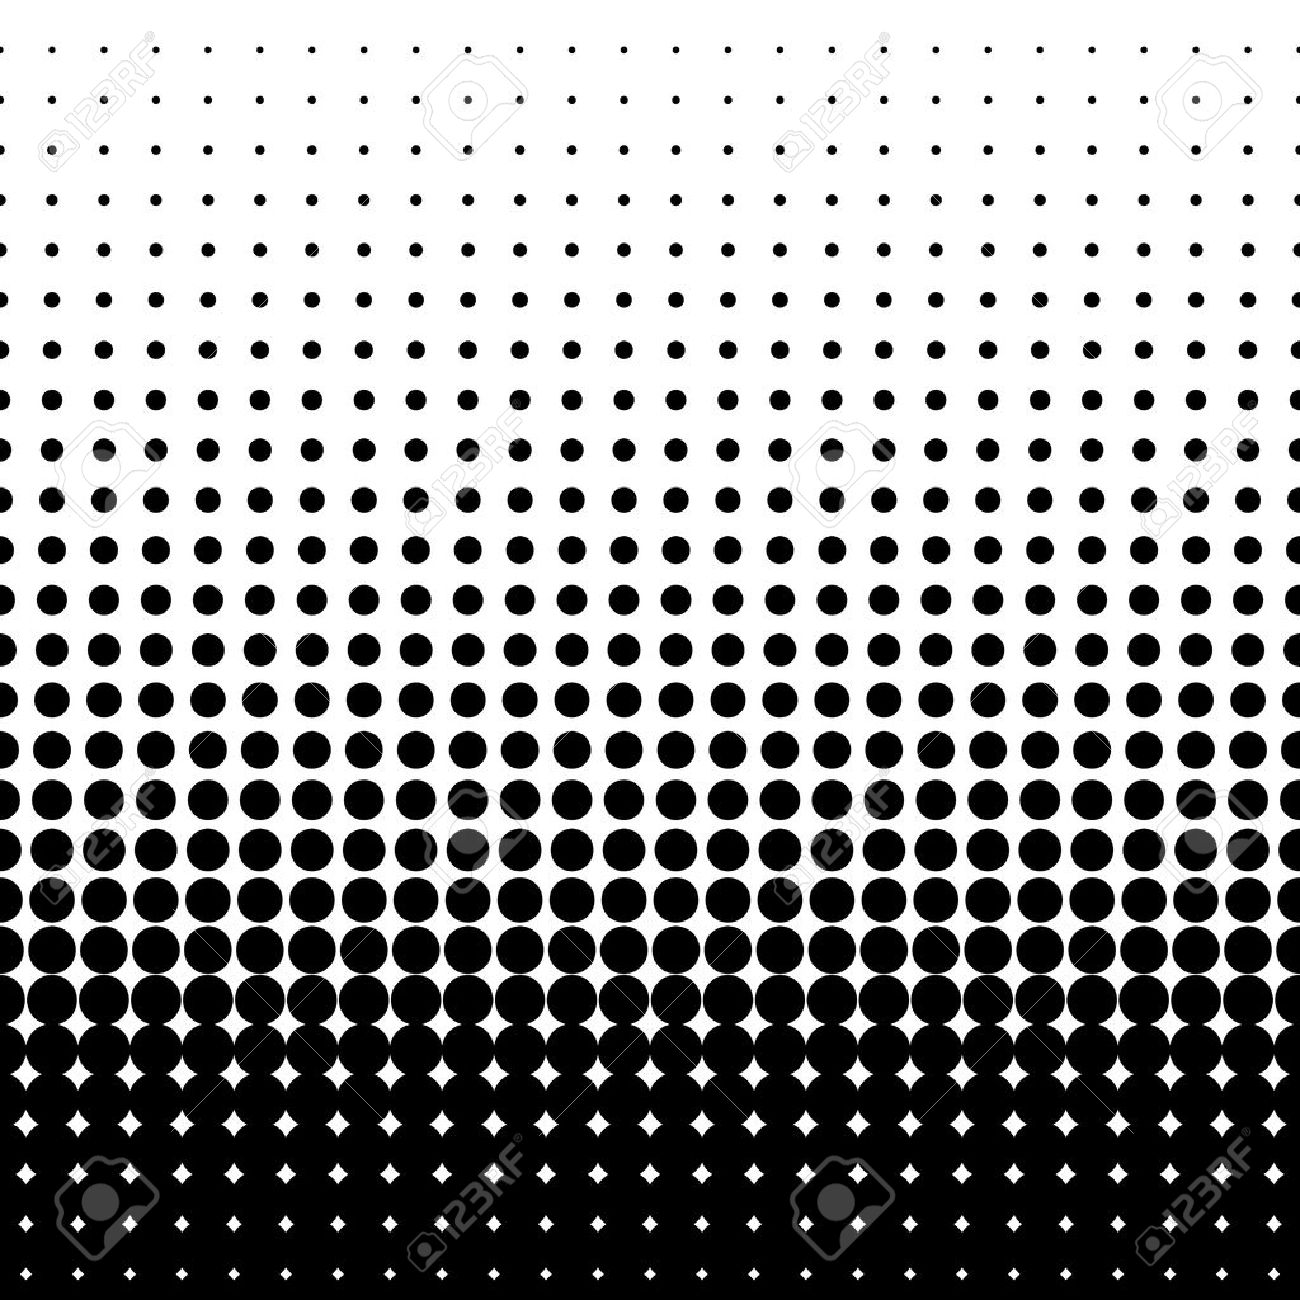 Halftone Dots Black Dots On White Background Vector Illustration